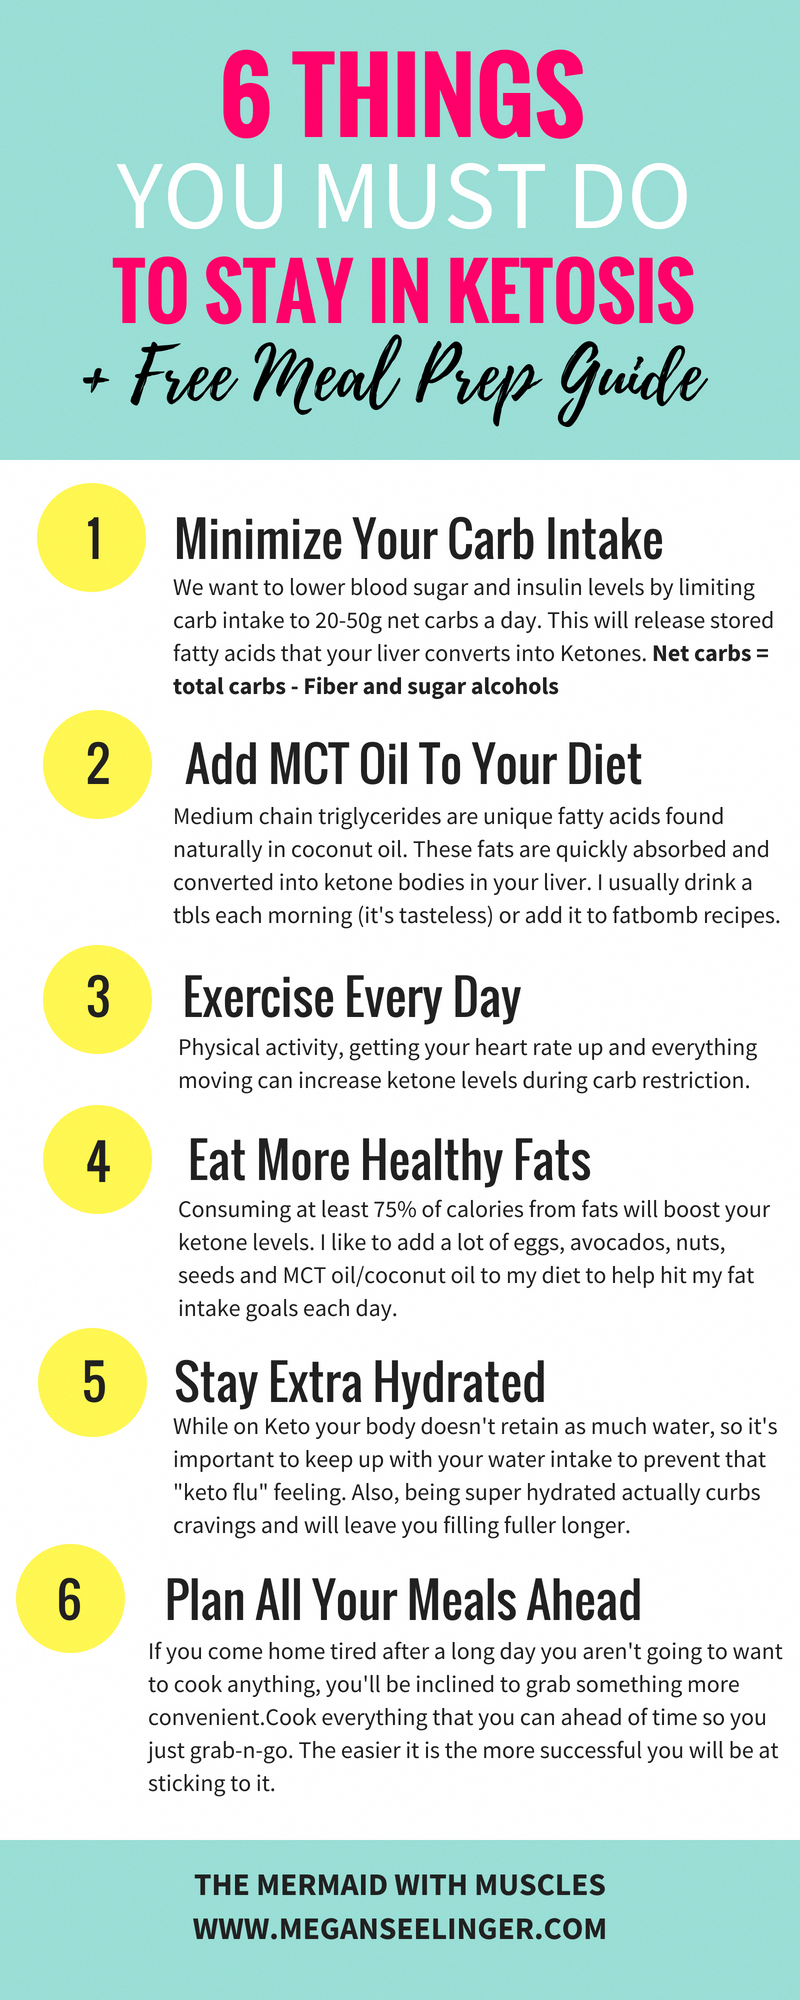 How to lose weight: workout plans and diet to burn fat